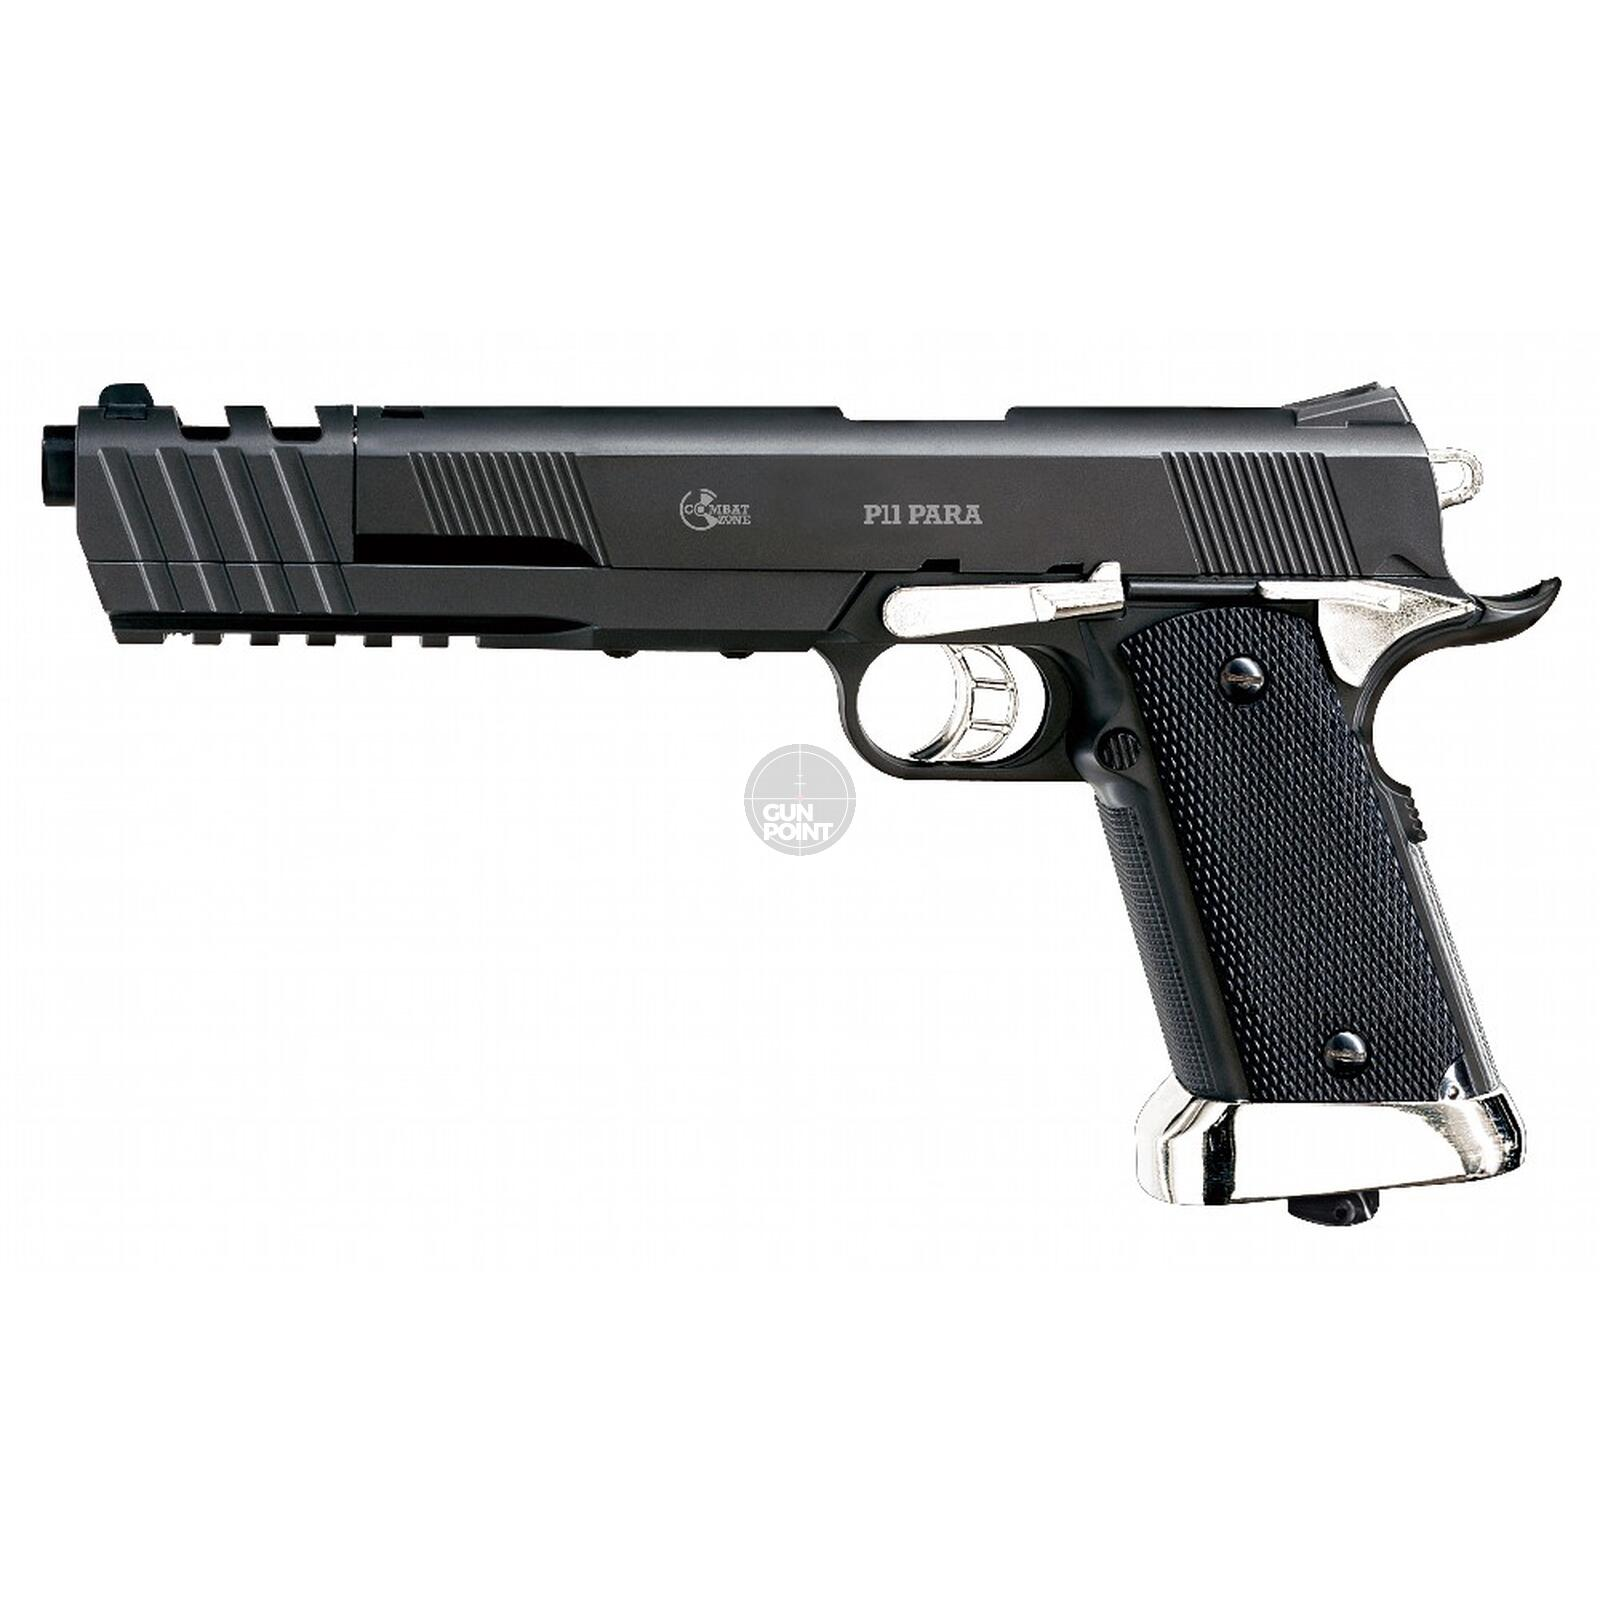 Softair - Pistole - COMBAT ZONE Model P11 Para CO2 NBB - ab 18, über 0,5 Joule